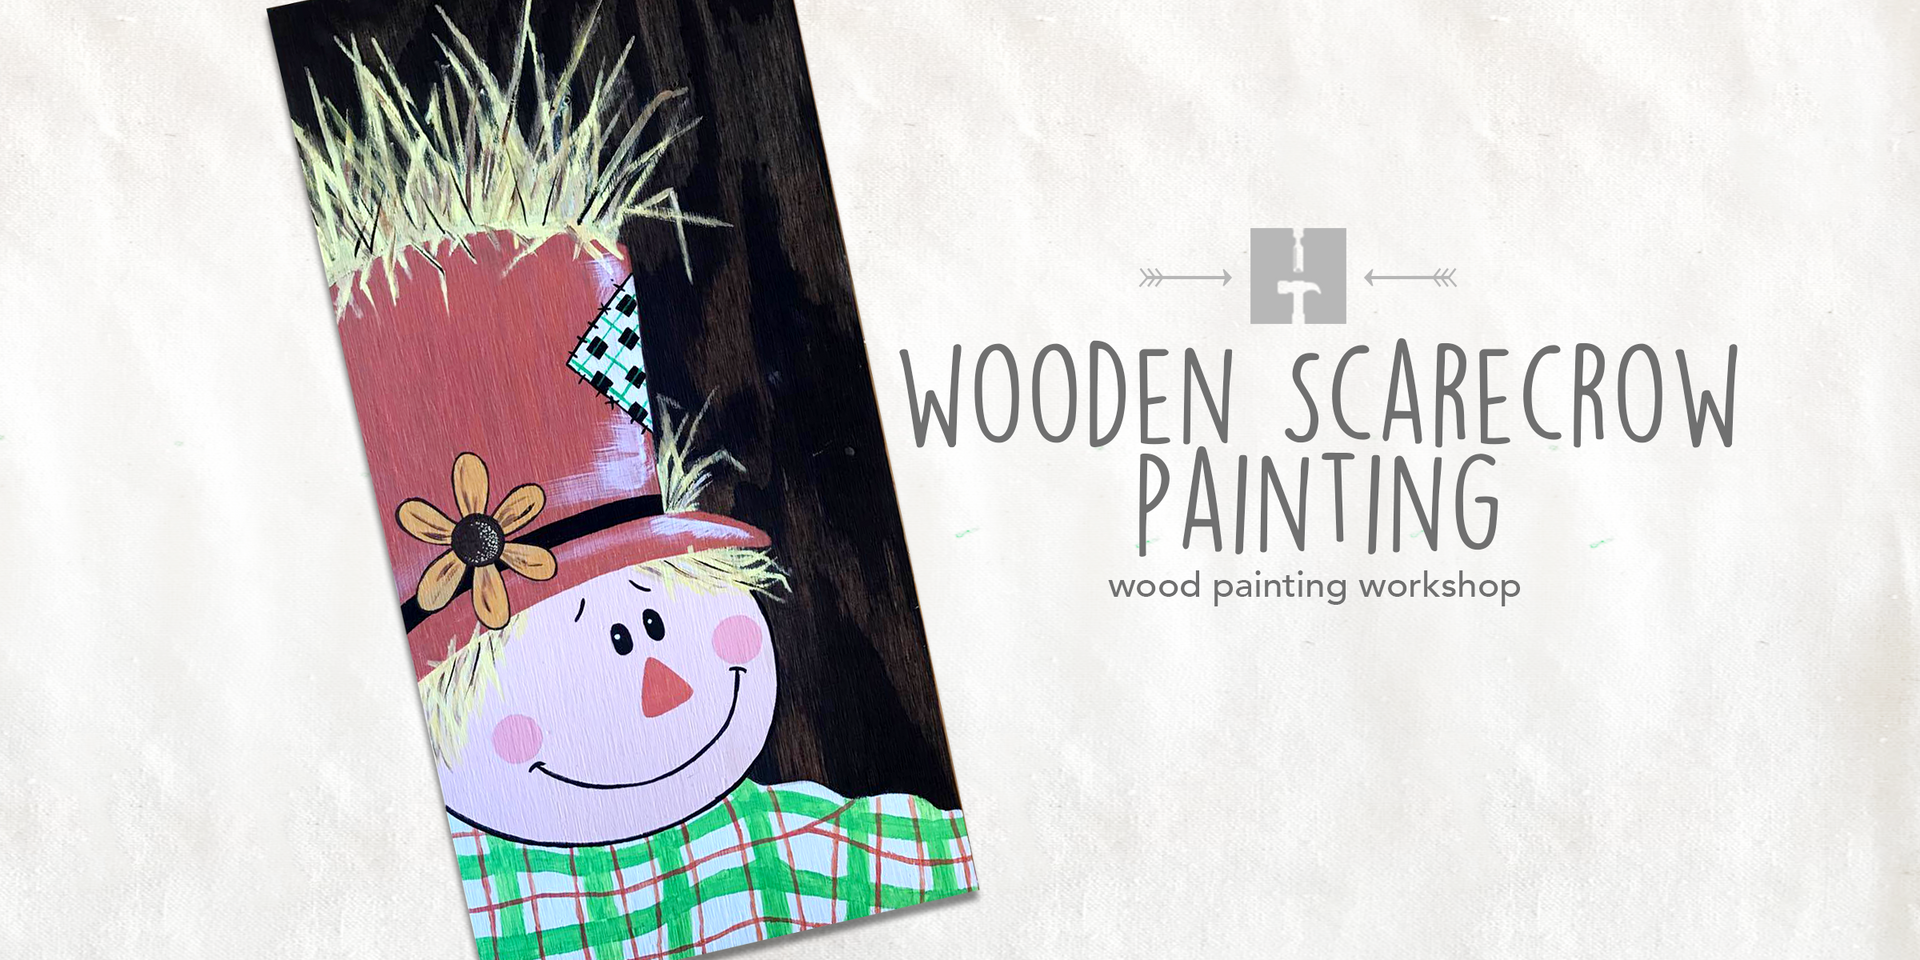 Woden Scarecrow Painting